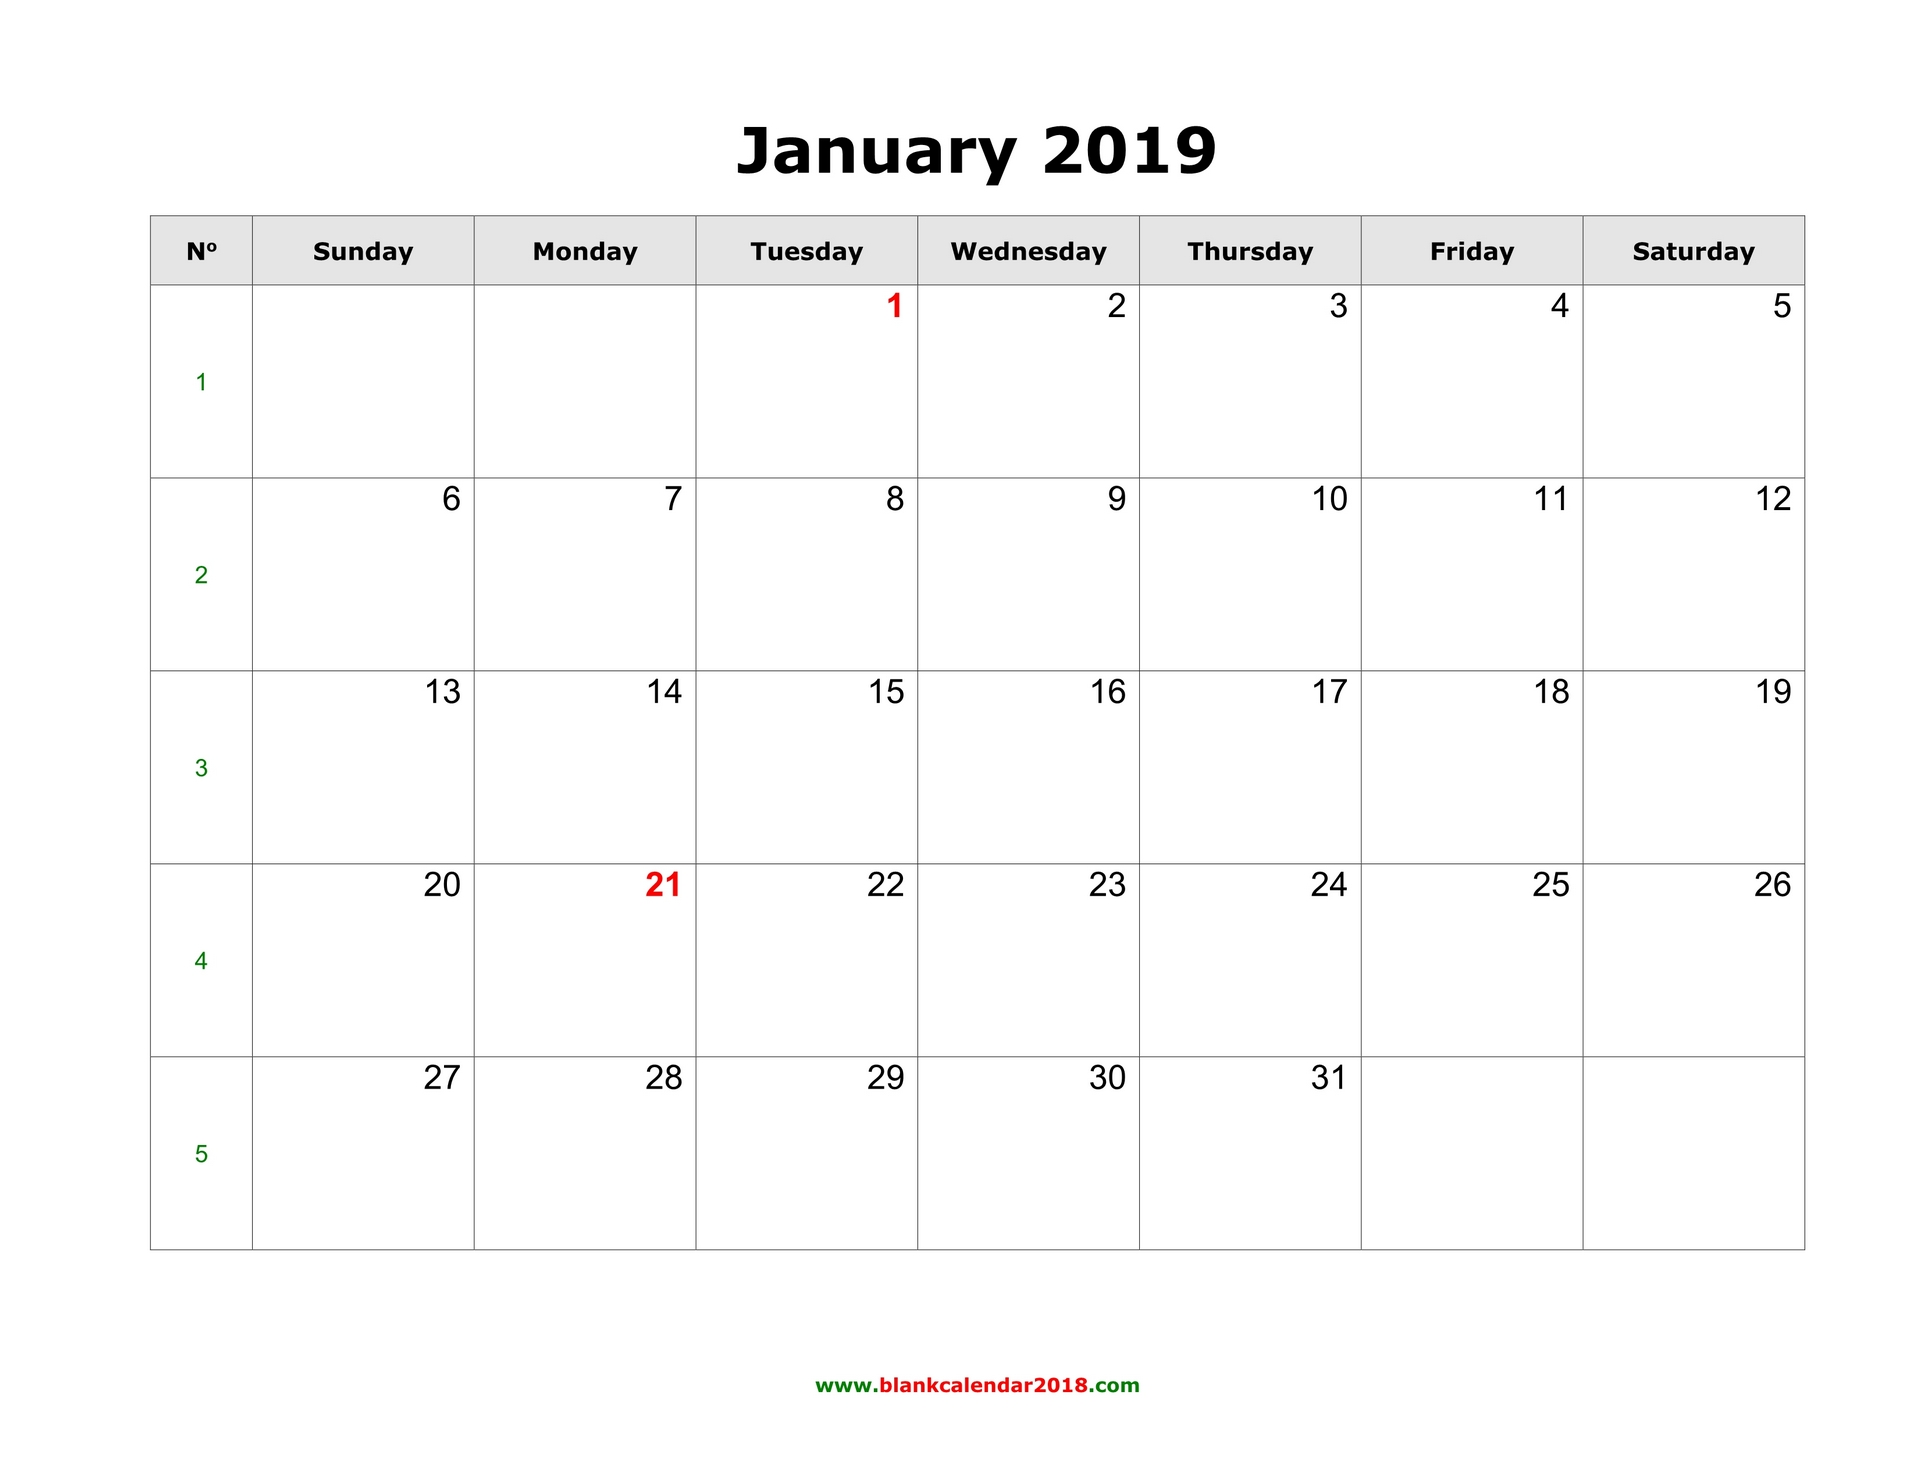 Calendar Sheet January 2019 Blank Calendar for January 2019